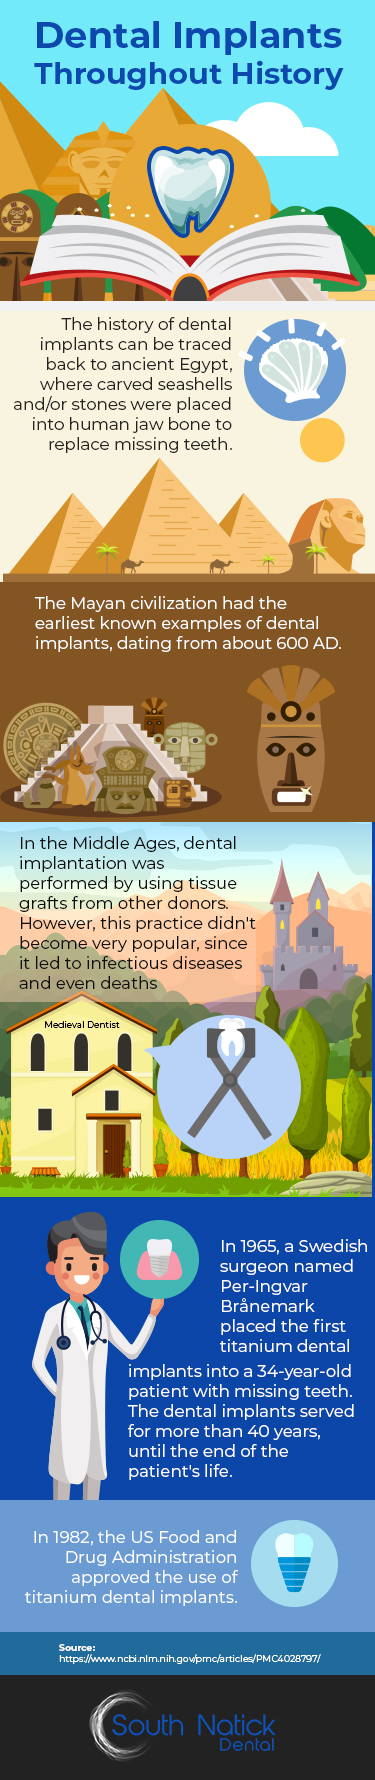 Dental Implants Throughout History - Infographic